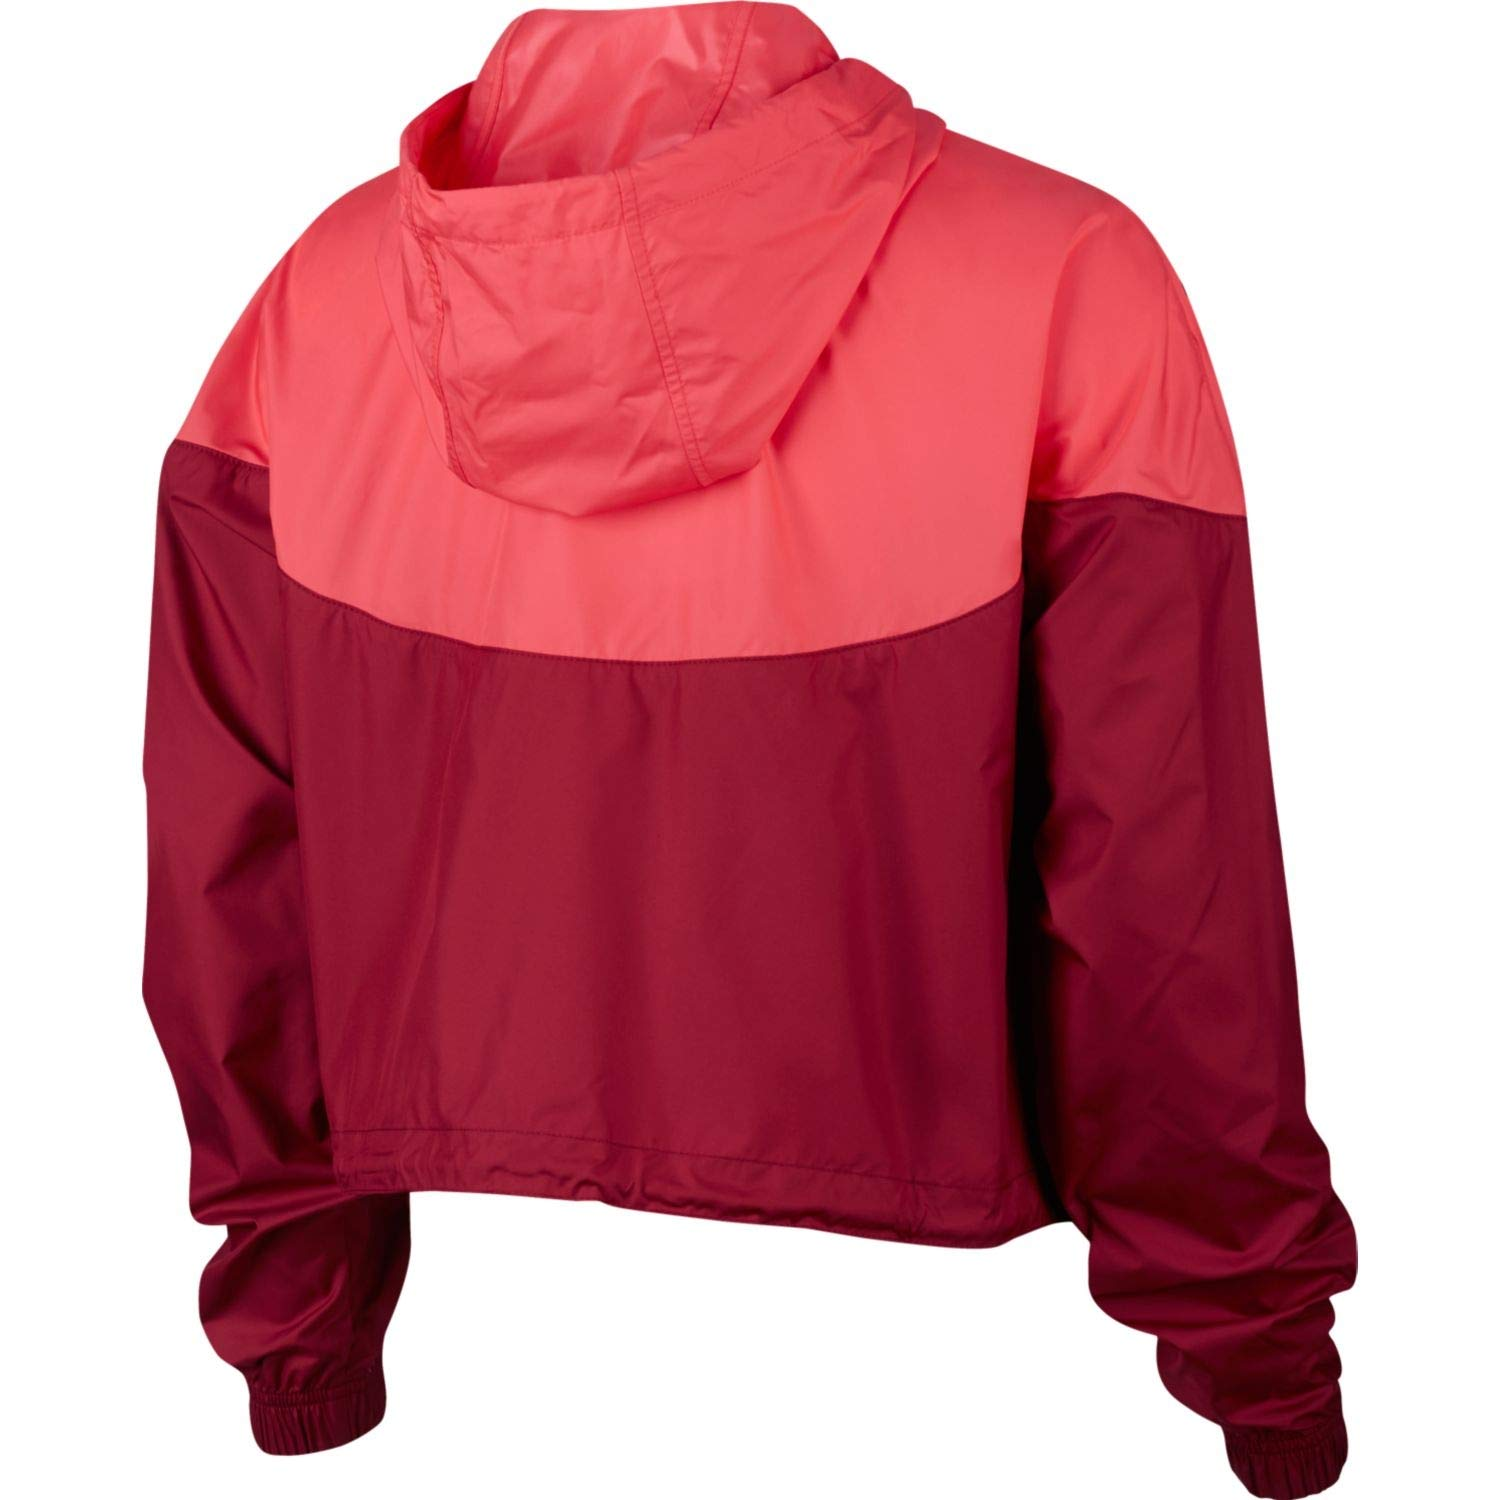 Nike Womens Heritage Windrunner Track Jacket Team Red/Ember Glow/White AR2511-677 Size Small by Nike (Image #2)